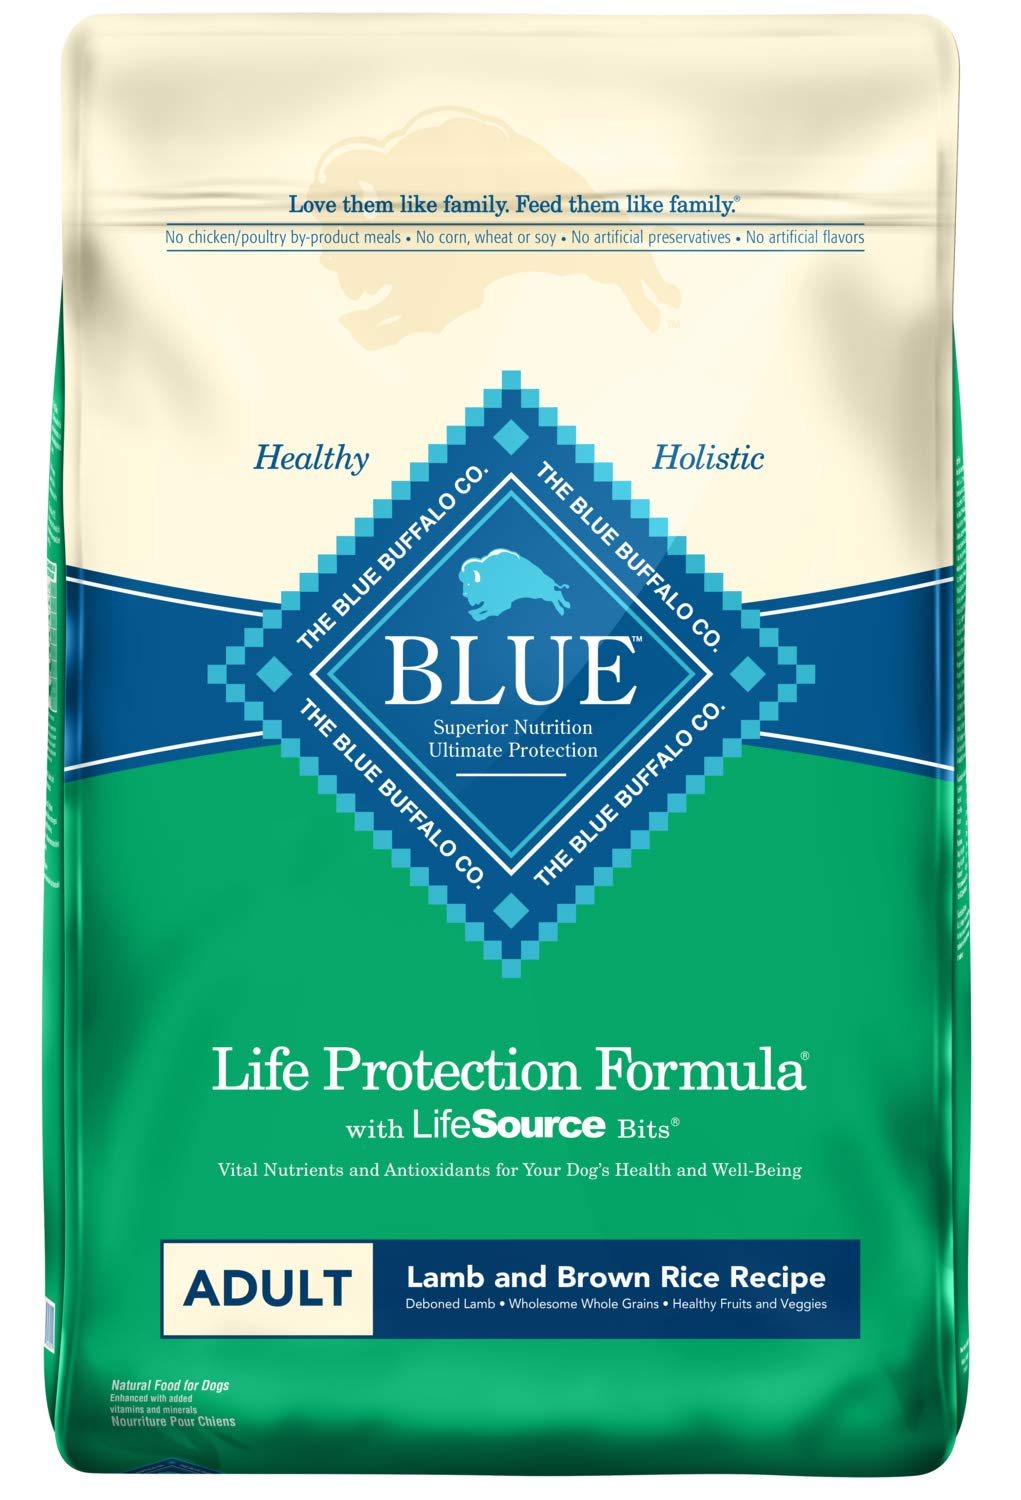 Blue Buffalo Life Protection Formula Adult Dog Food - Natural Dry Dog Food for Adult Dogs - Lamb and Brown Rice - 30 lb. Bag by Blue Buffalo